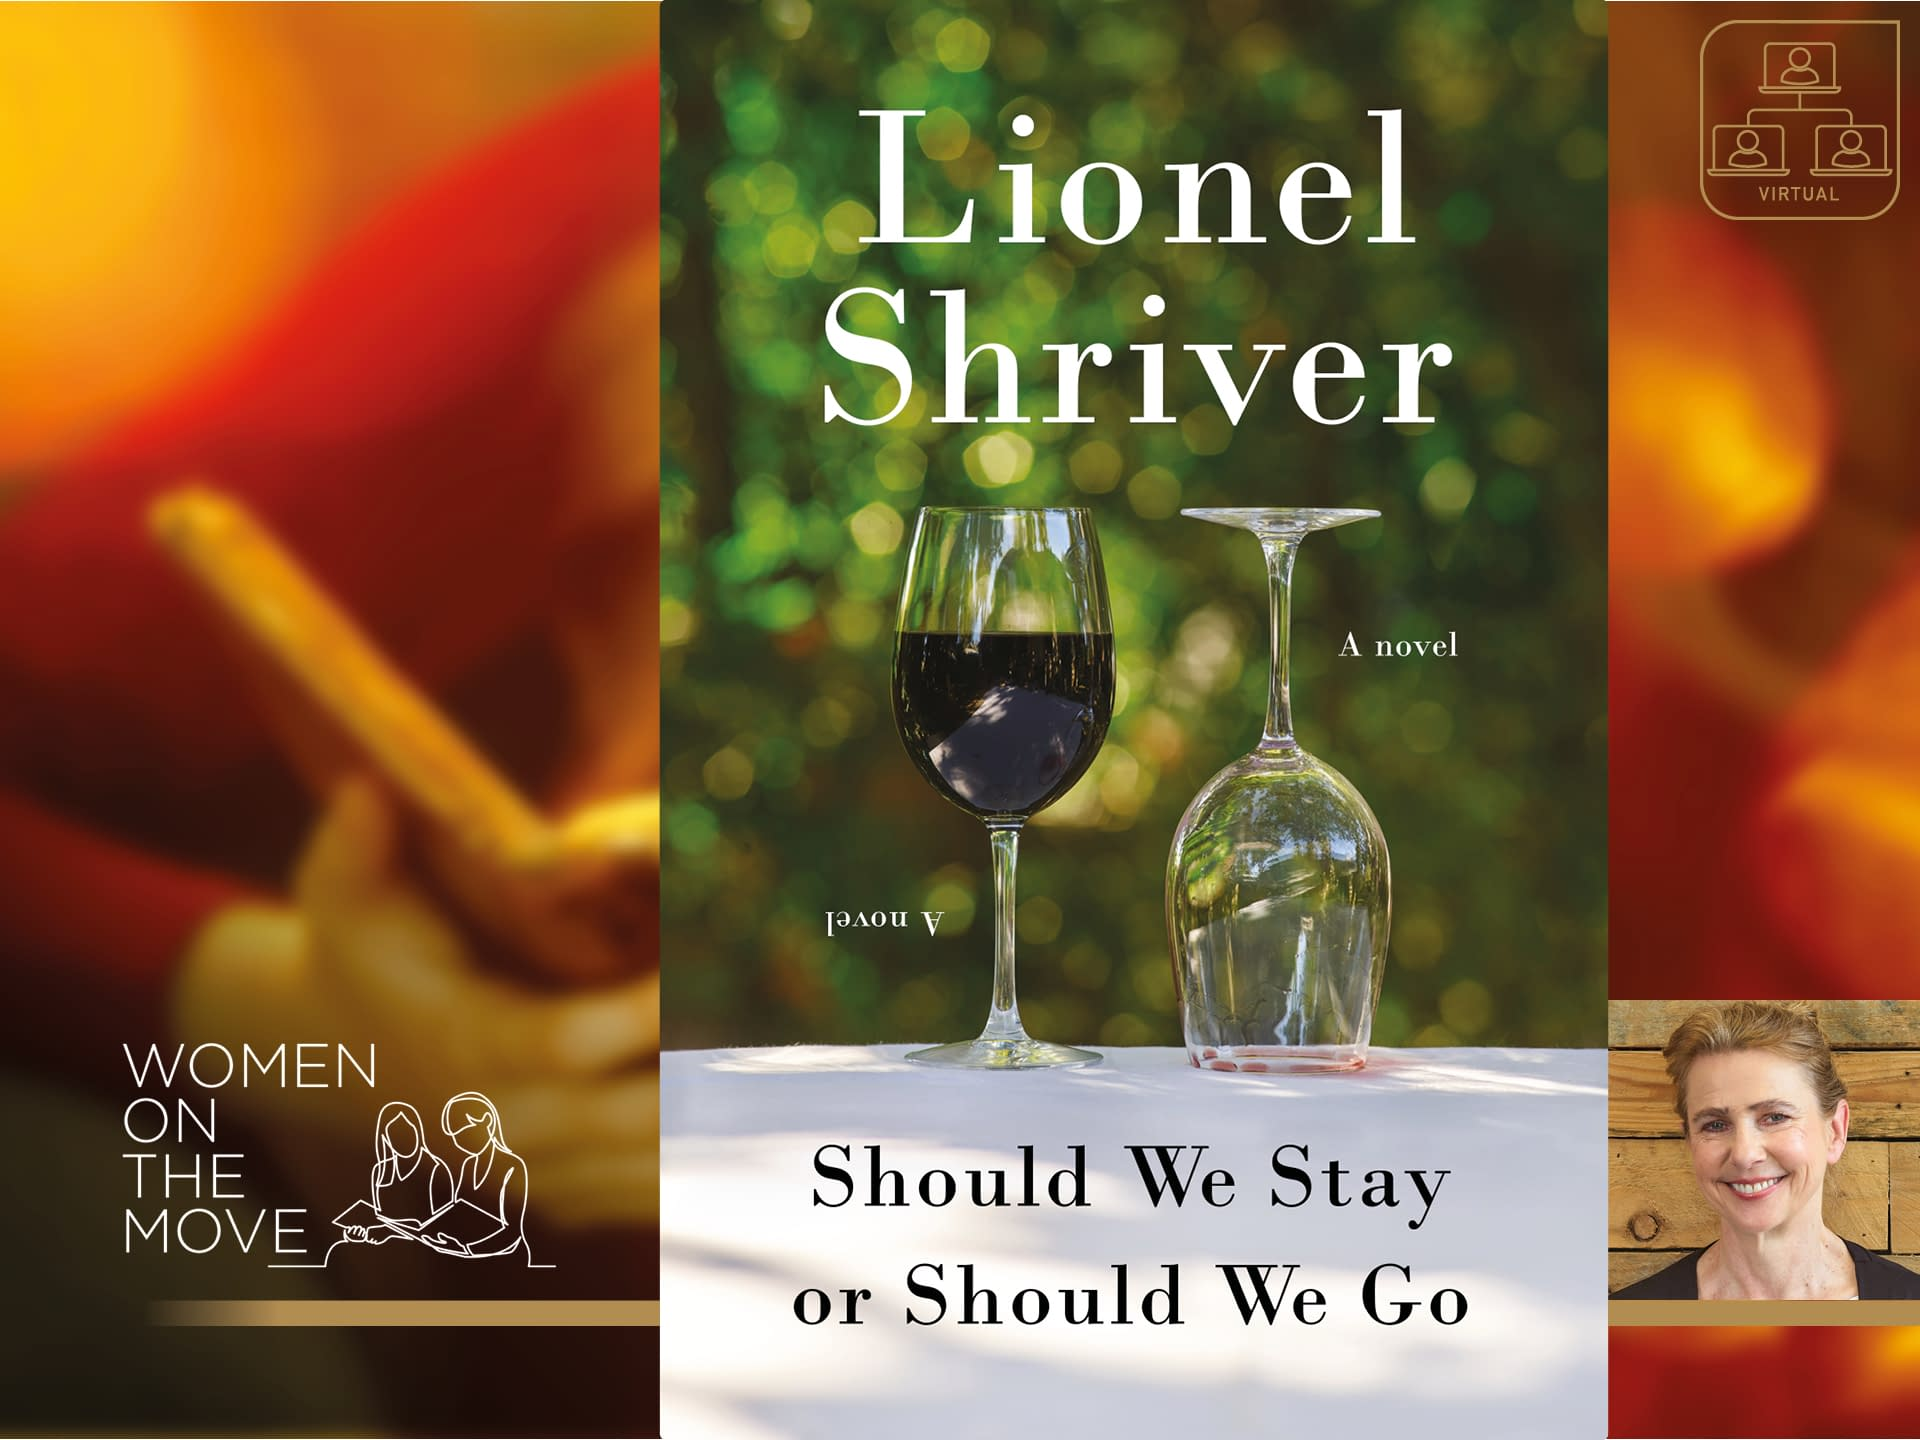 Lionel Shriver: Women on the Move 3 - - author